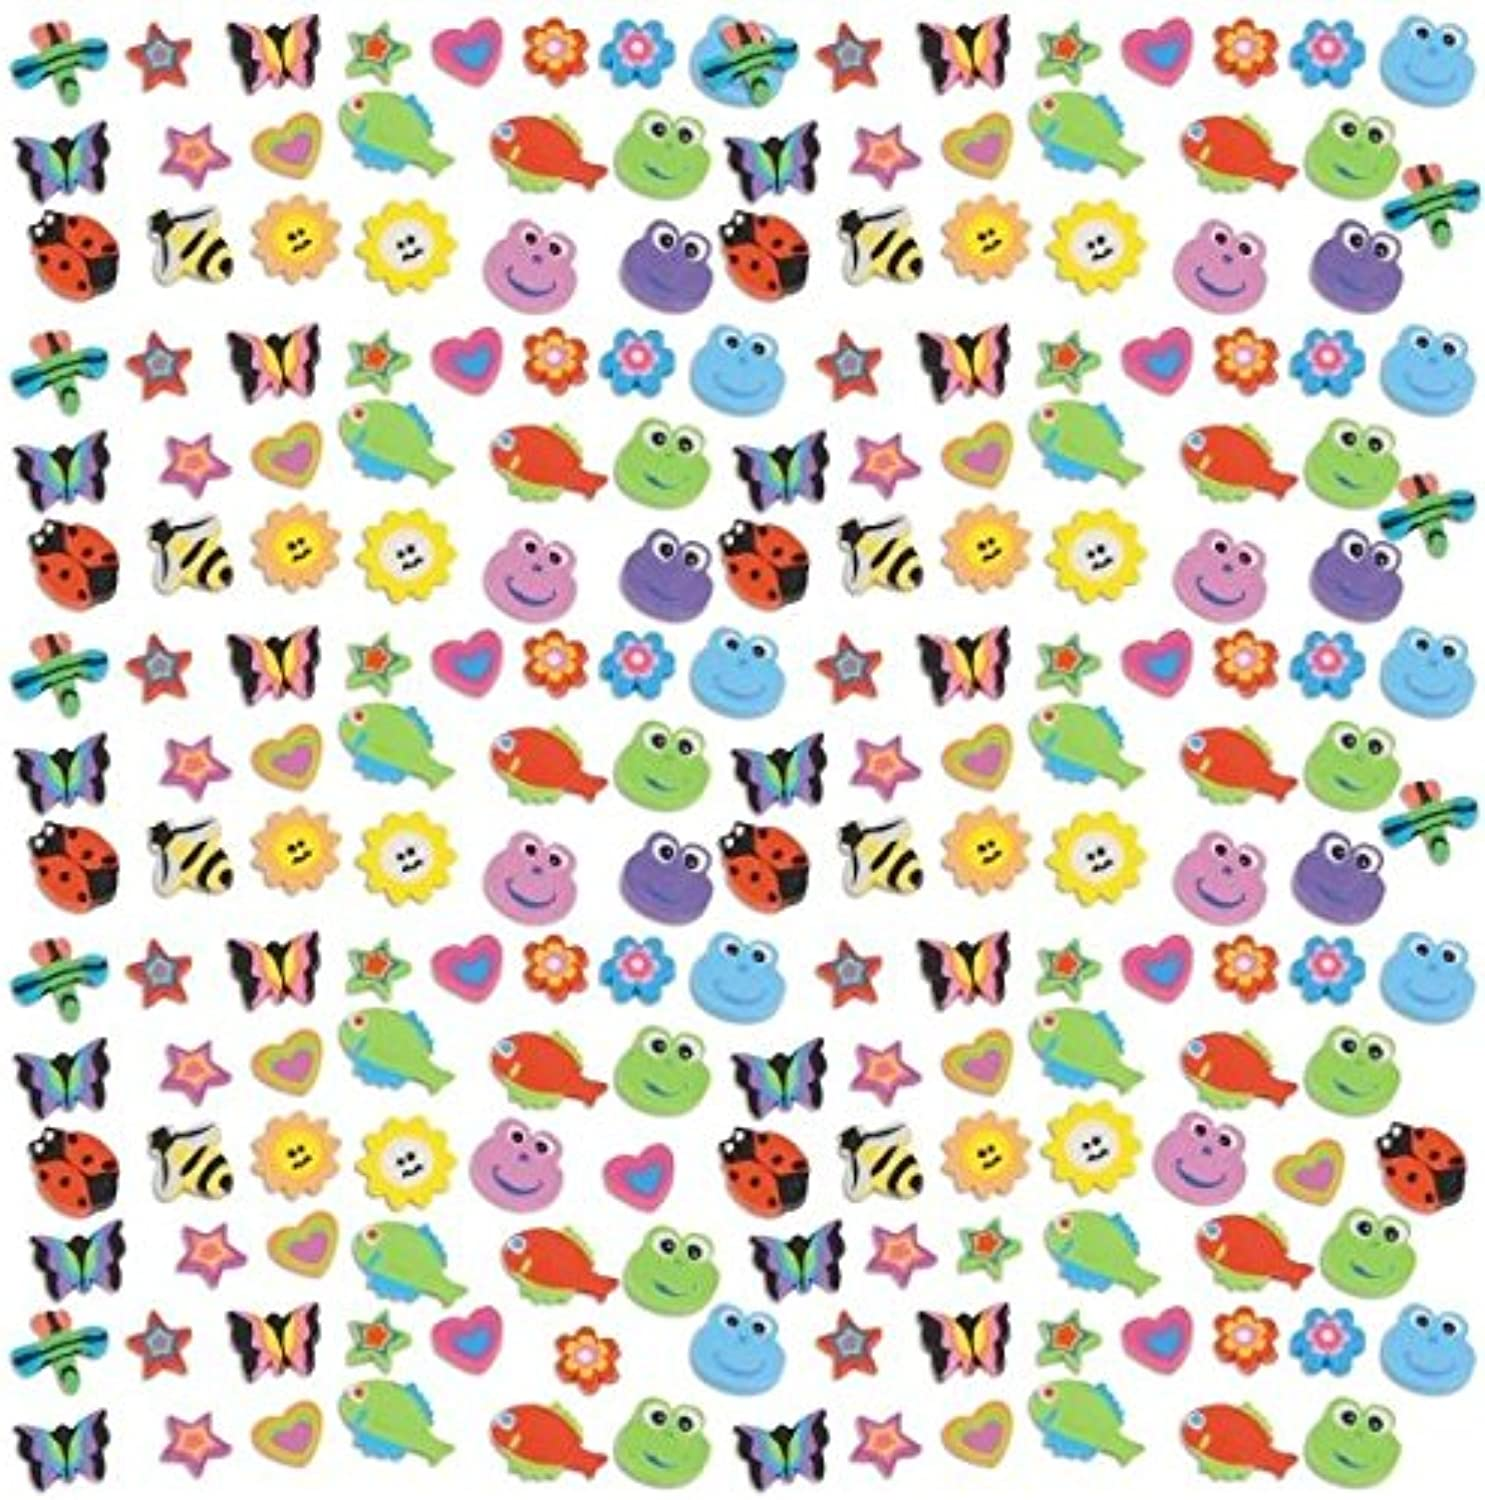 comprar ahora Amscan Party Perfect Assorted Bugs and and and Animals Mini Eraser Mega Value Pack (500 Piece), 7 11 16 x 7 5 8, MultiColor by Amscan  venta de ofertas